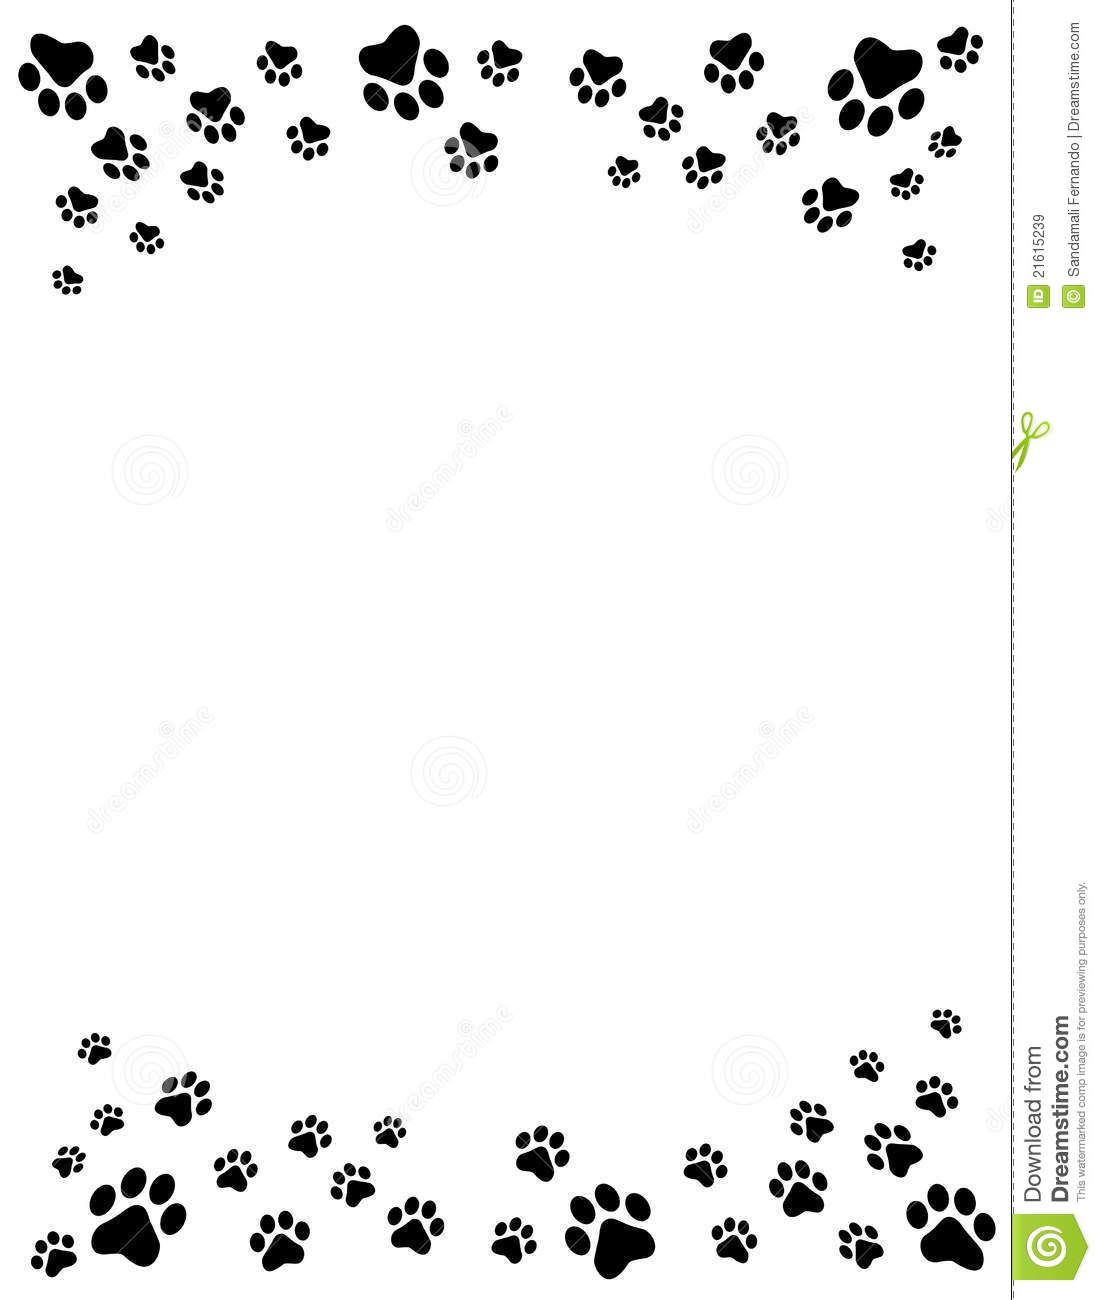 free cat clip art | Cat And Free Dog Clip Art Borders Paw Prints ...